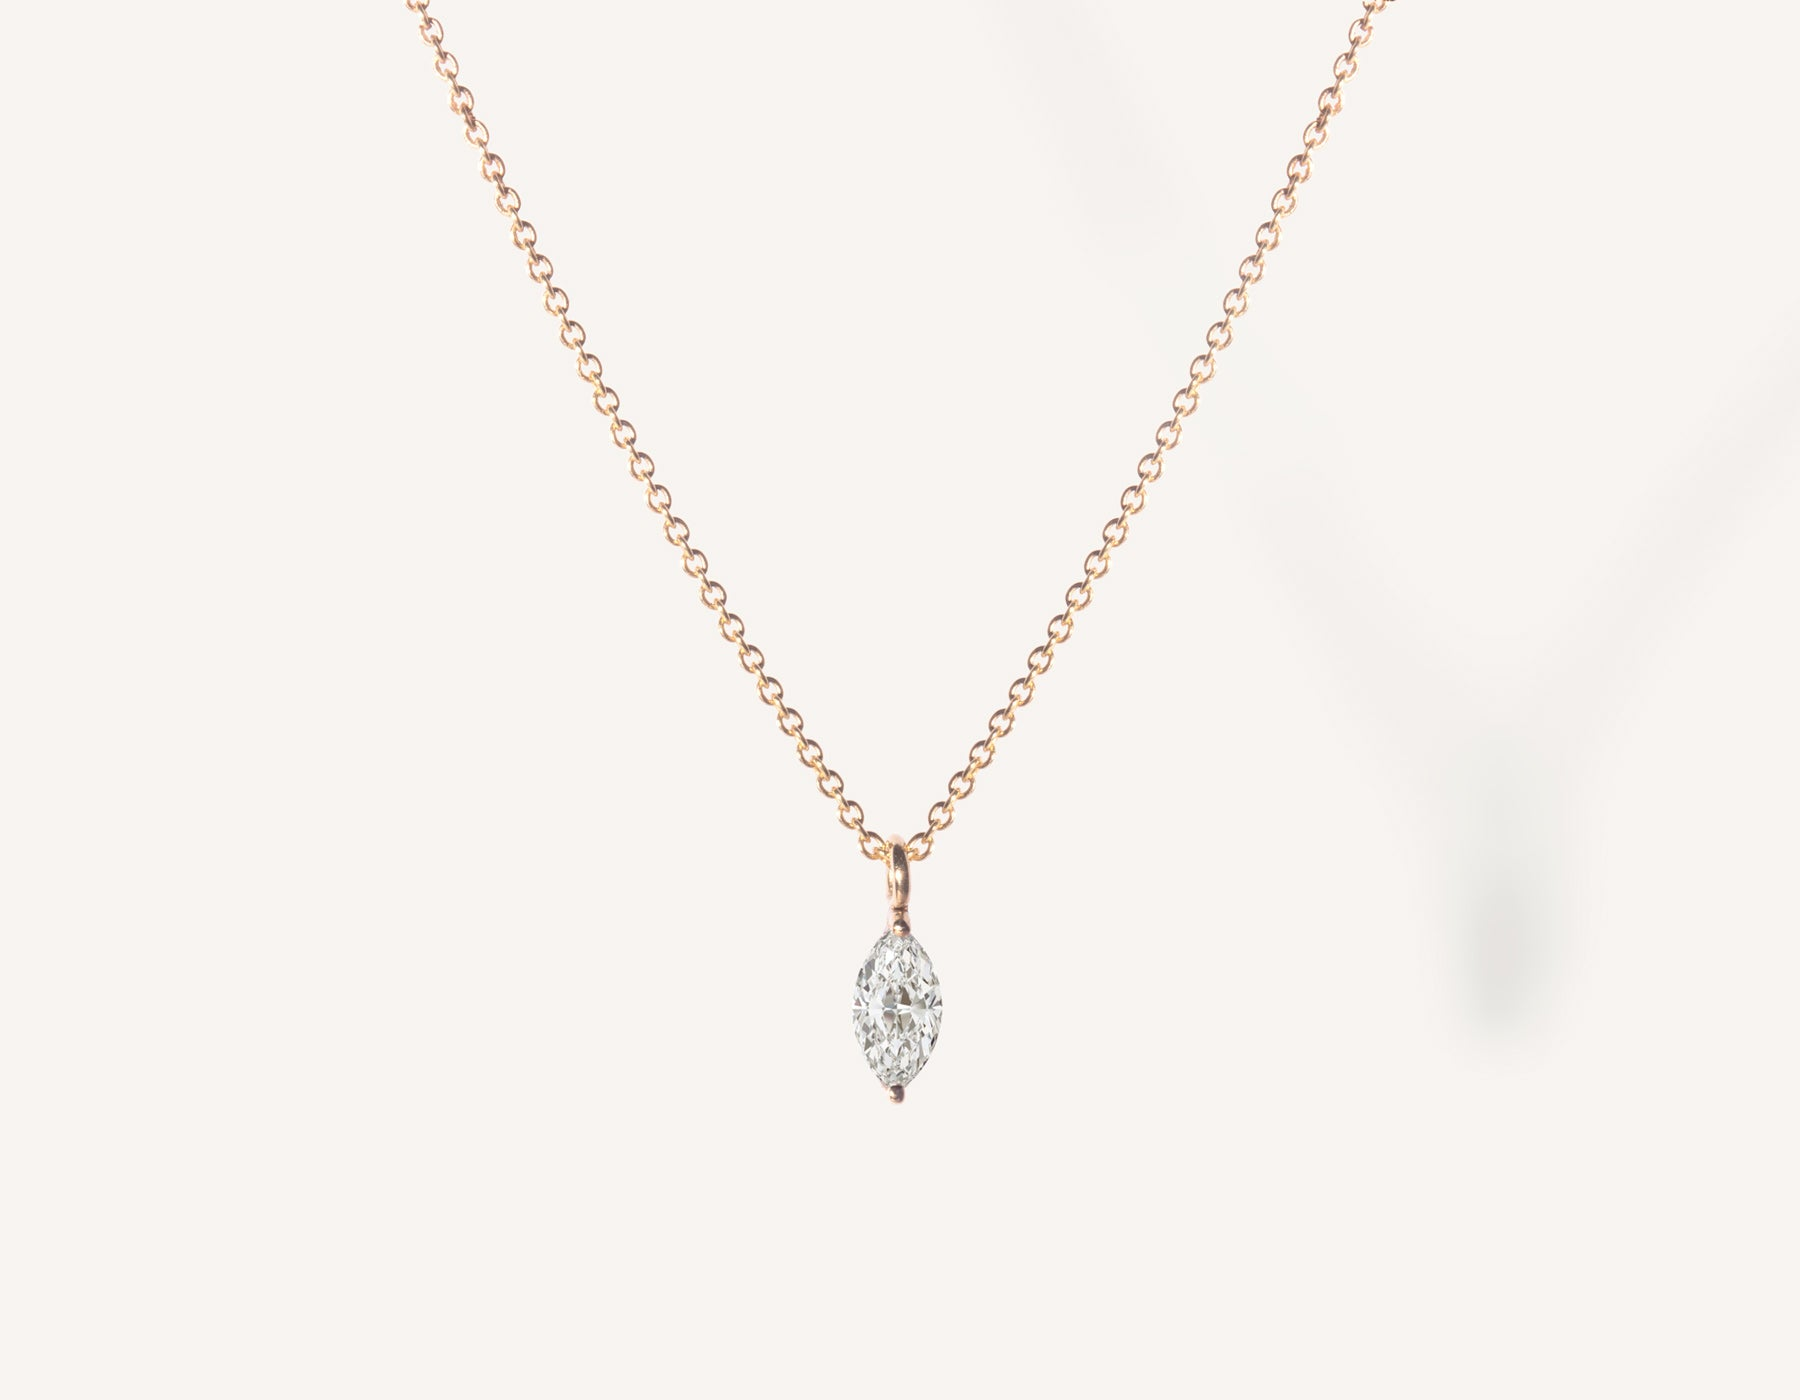 vrai & oro 14k solid gold dainty Marquise Diamond Necklace on minimalist oval link chain, 14K Rose Gold